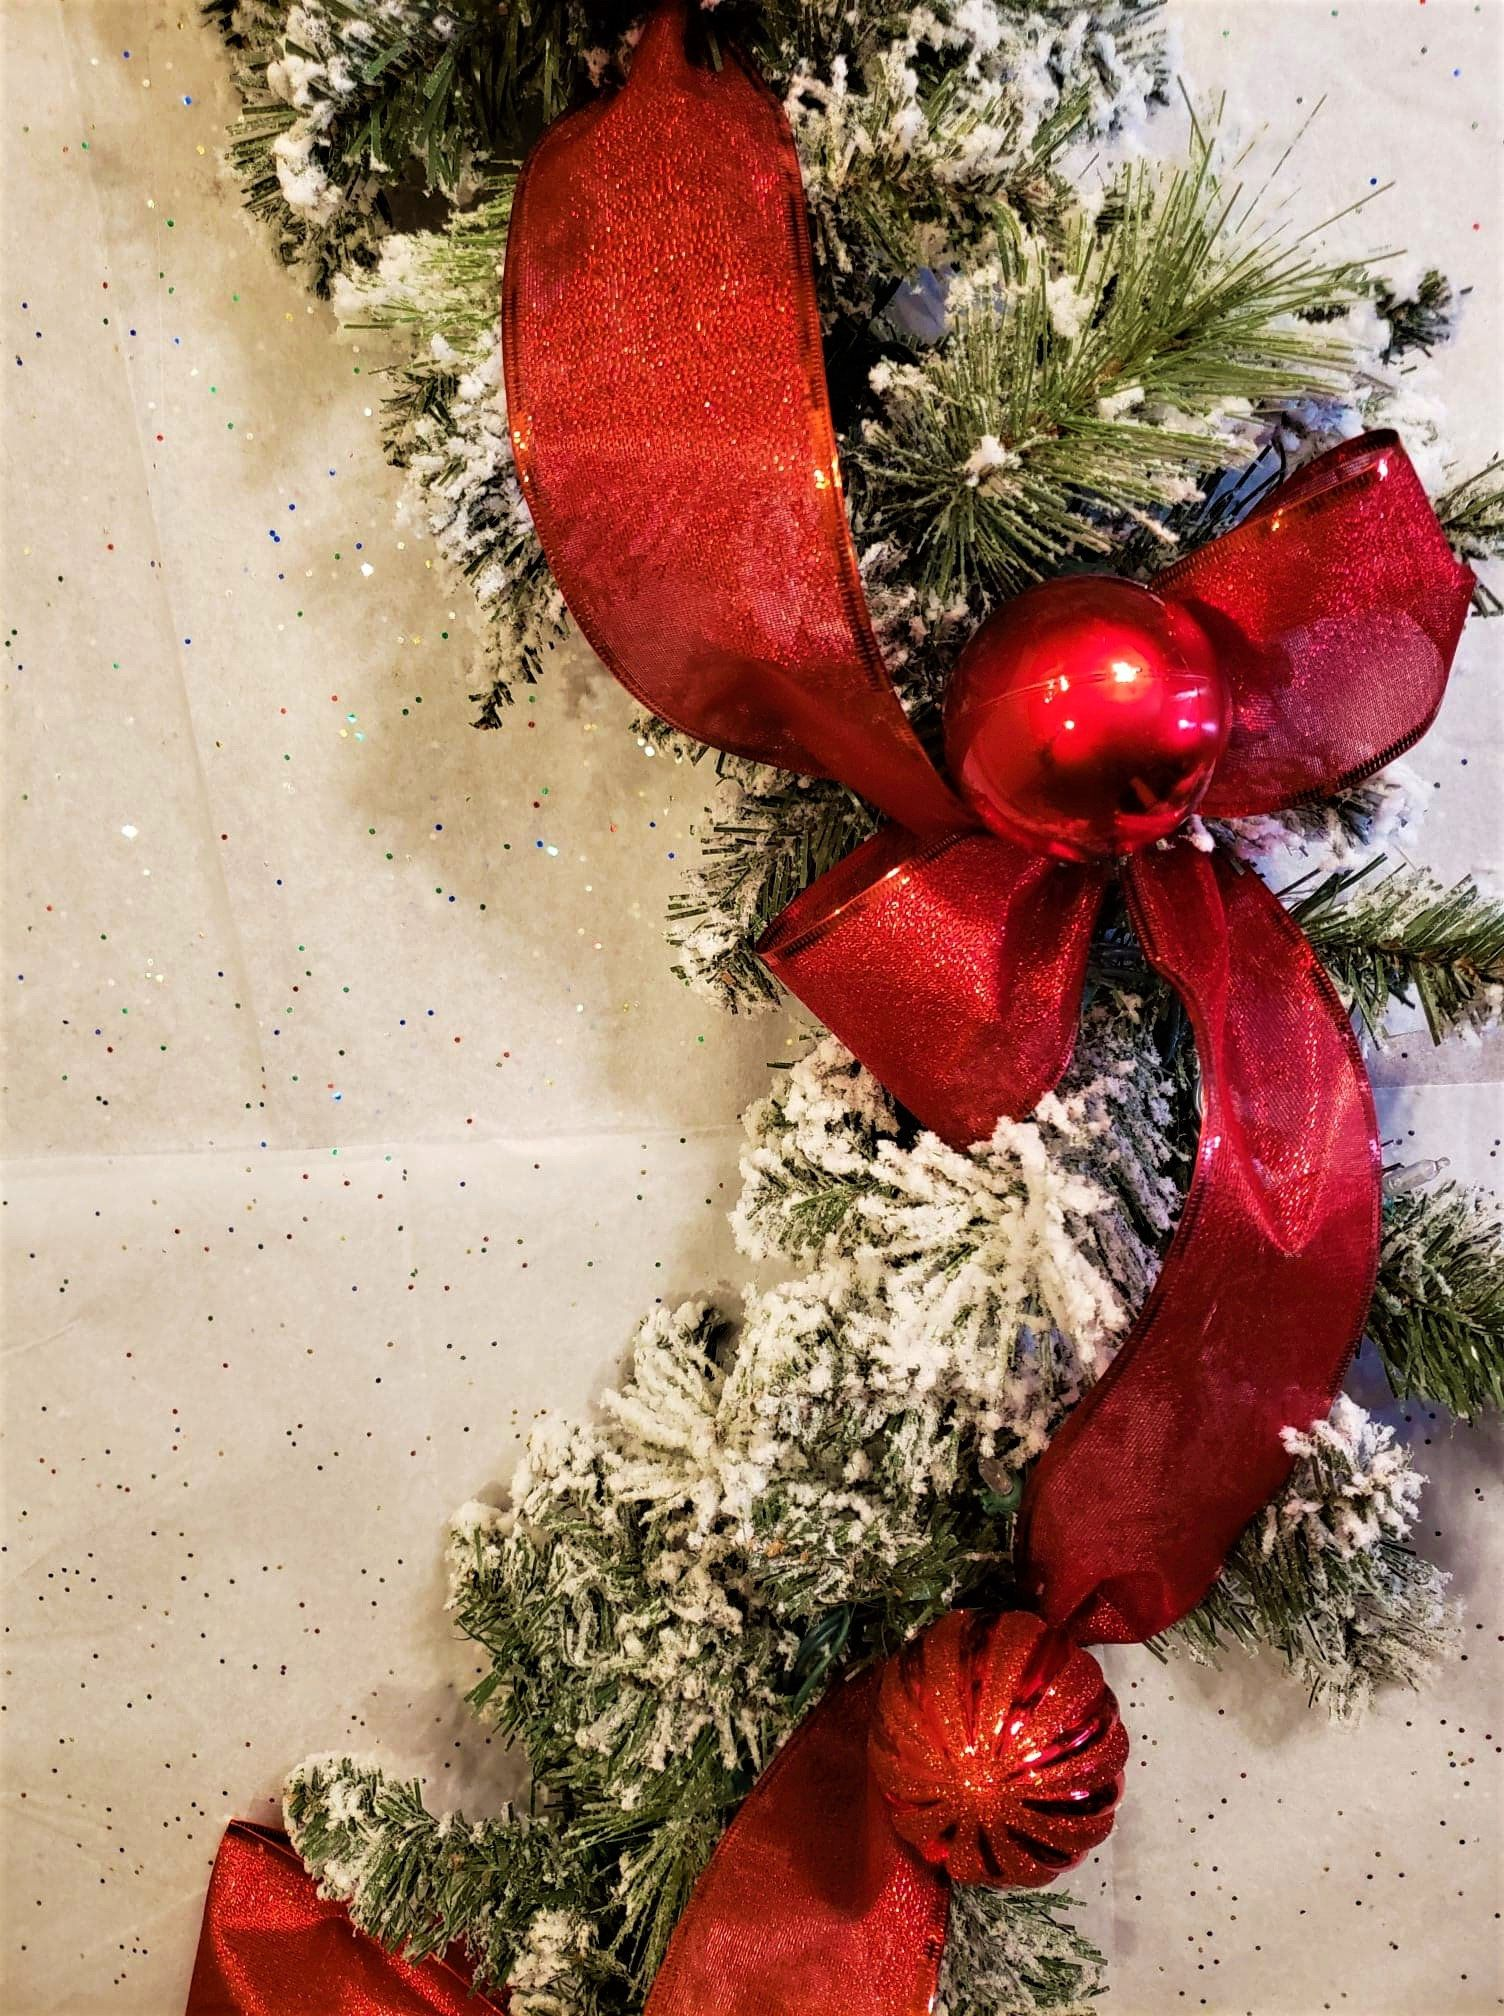 Pin By Cleanfoodcrush On I Christmas Christmas Mantel Decorations Christmas Fireplace Decor Christmas Garland